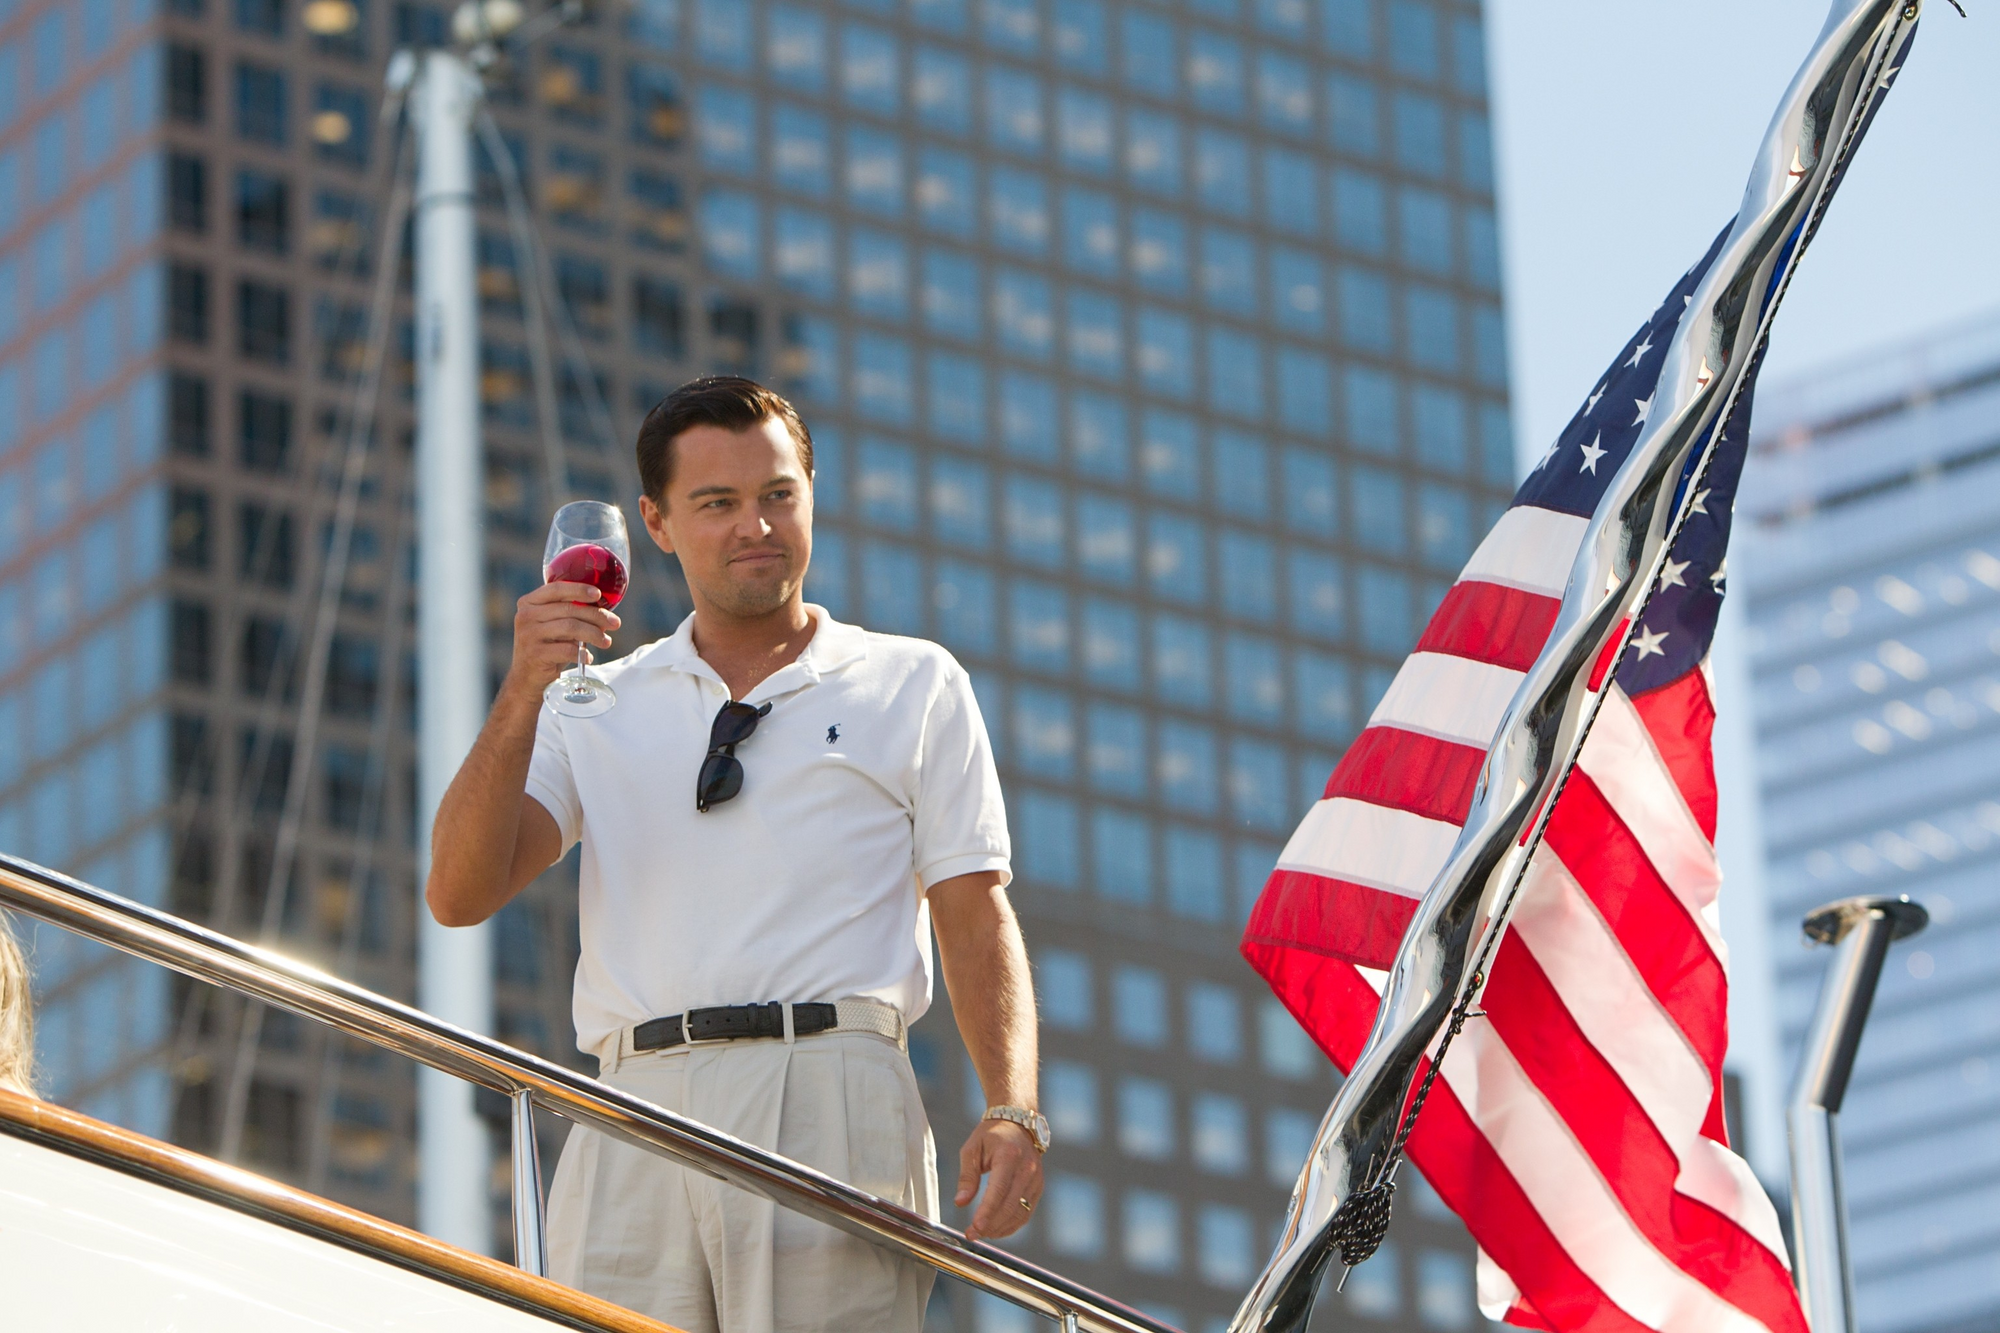 Jordan Belfort on his yacht holding a glass of red wine